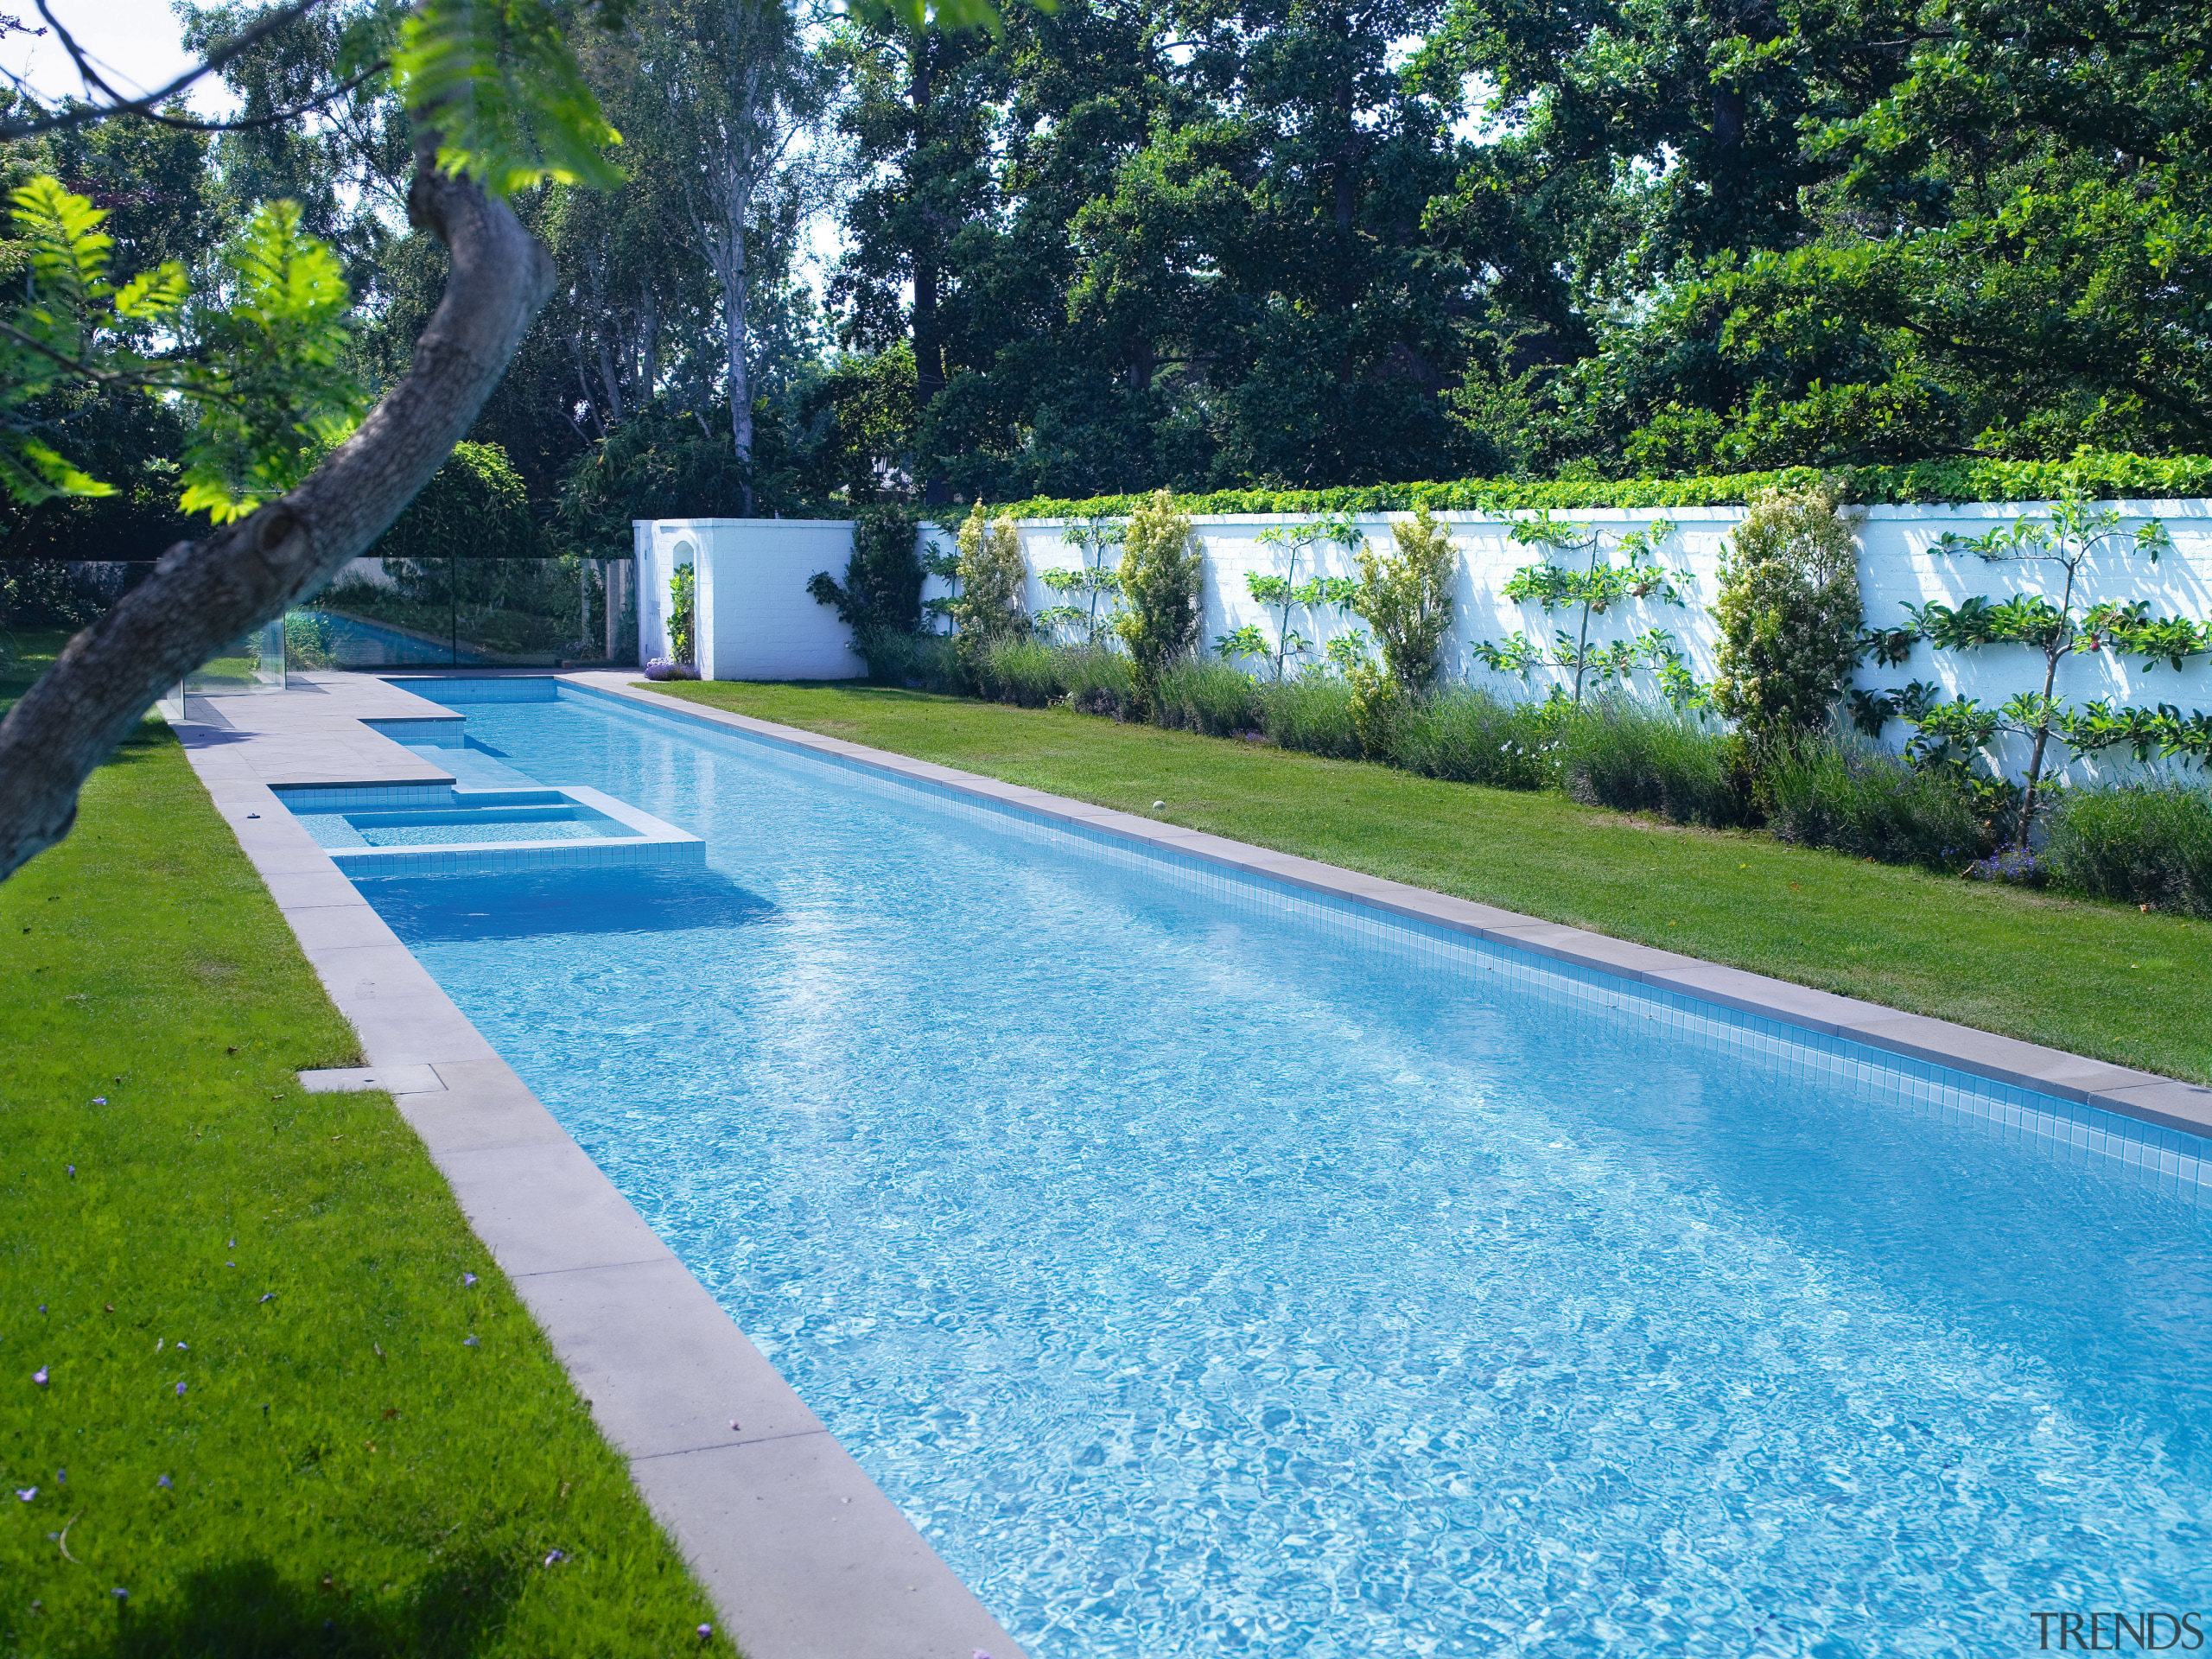 View of the long Pool that features perimeter estate, garden, grass, landscape, landscaping, lawn, leisure, plant, property, real estate, reflecting pool, swimming pool, tree, water, water feature, water resources, watercourse, yard, teal